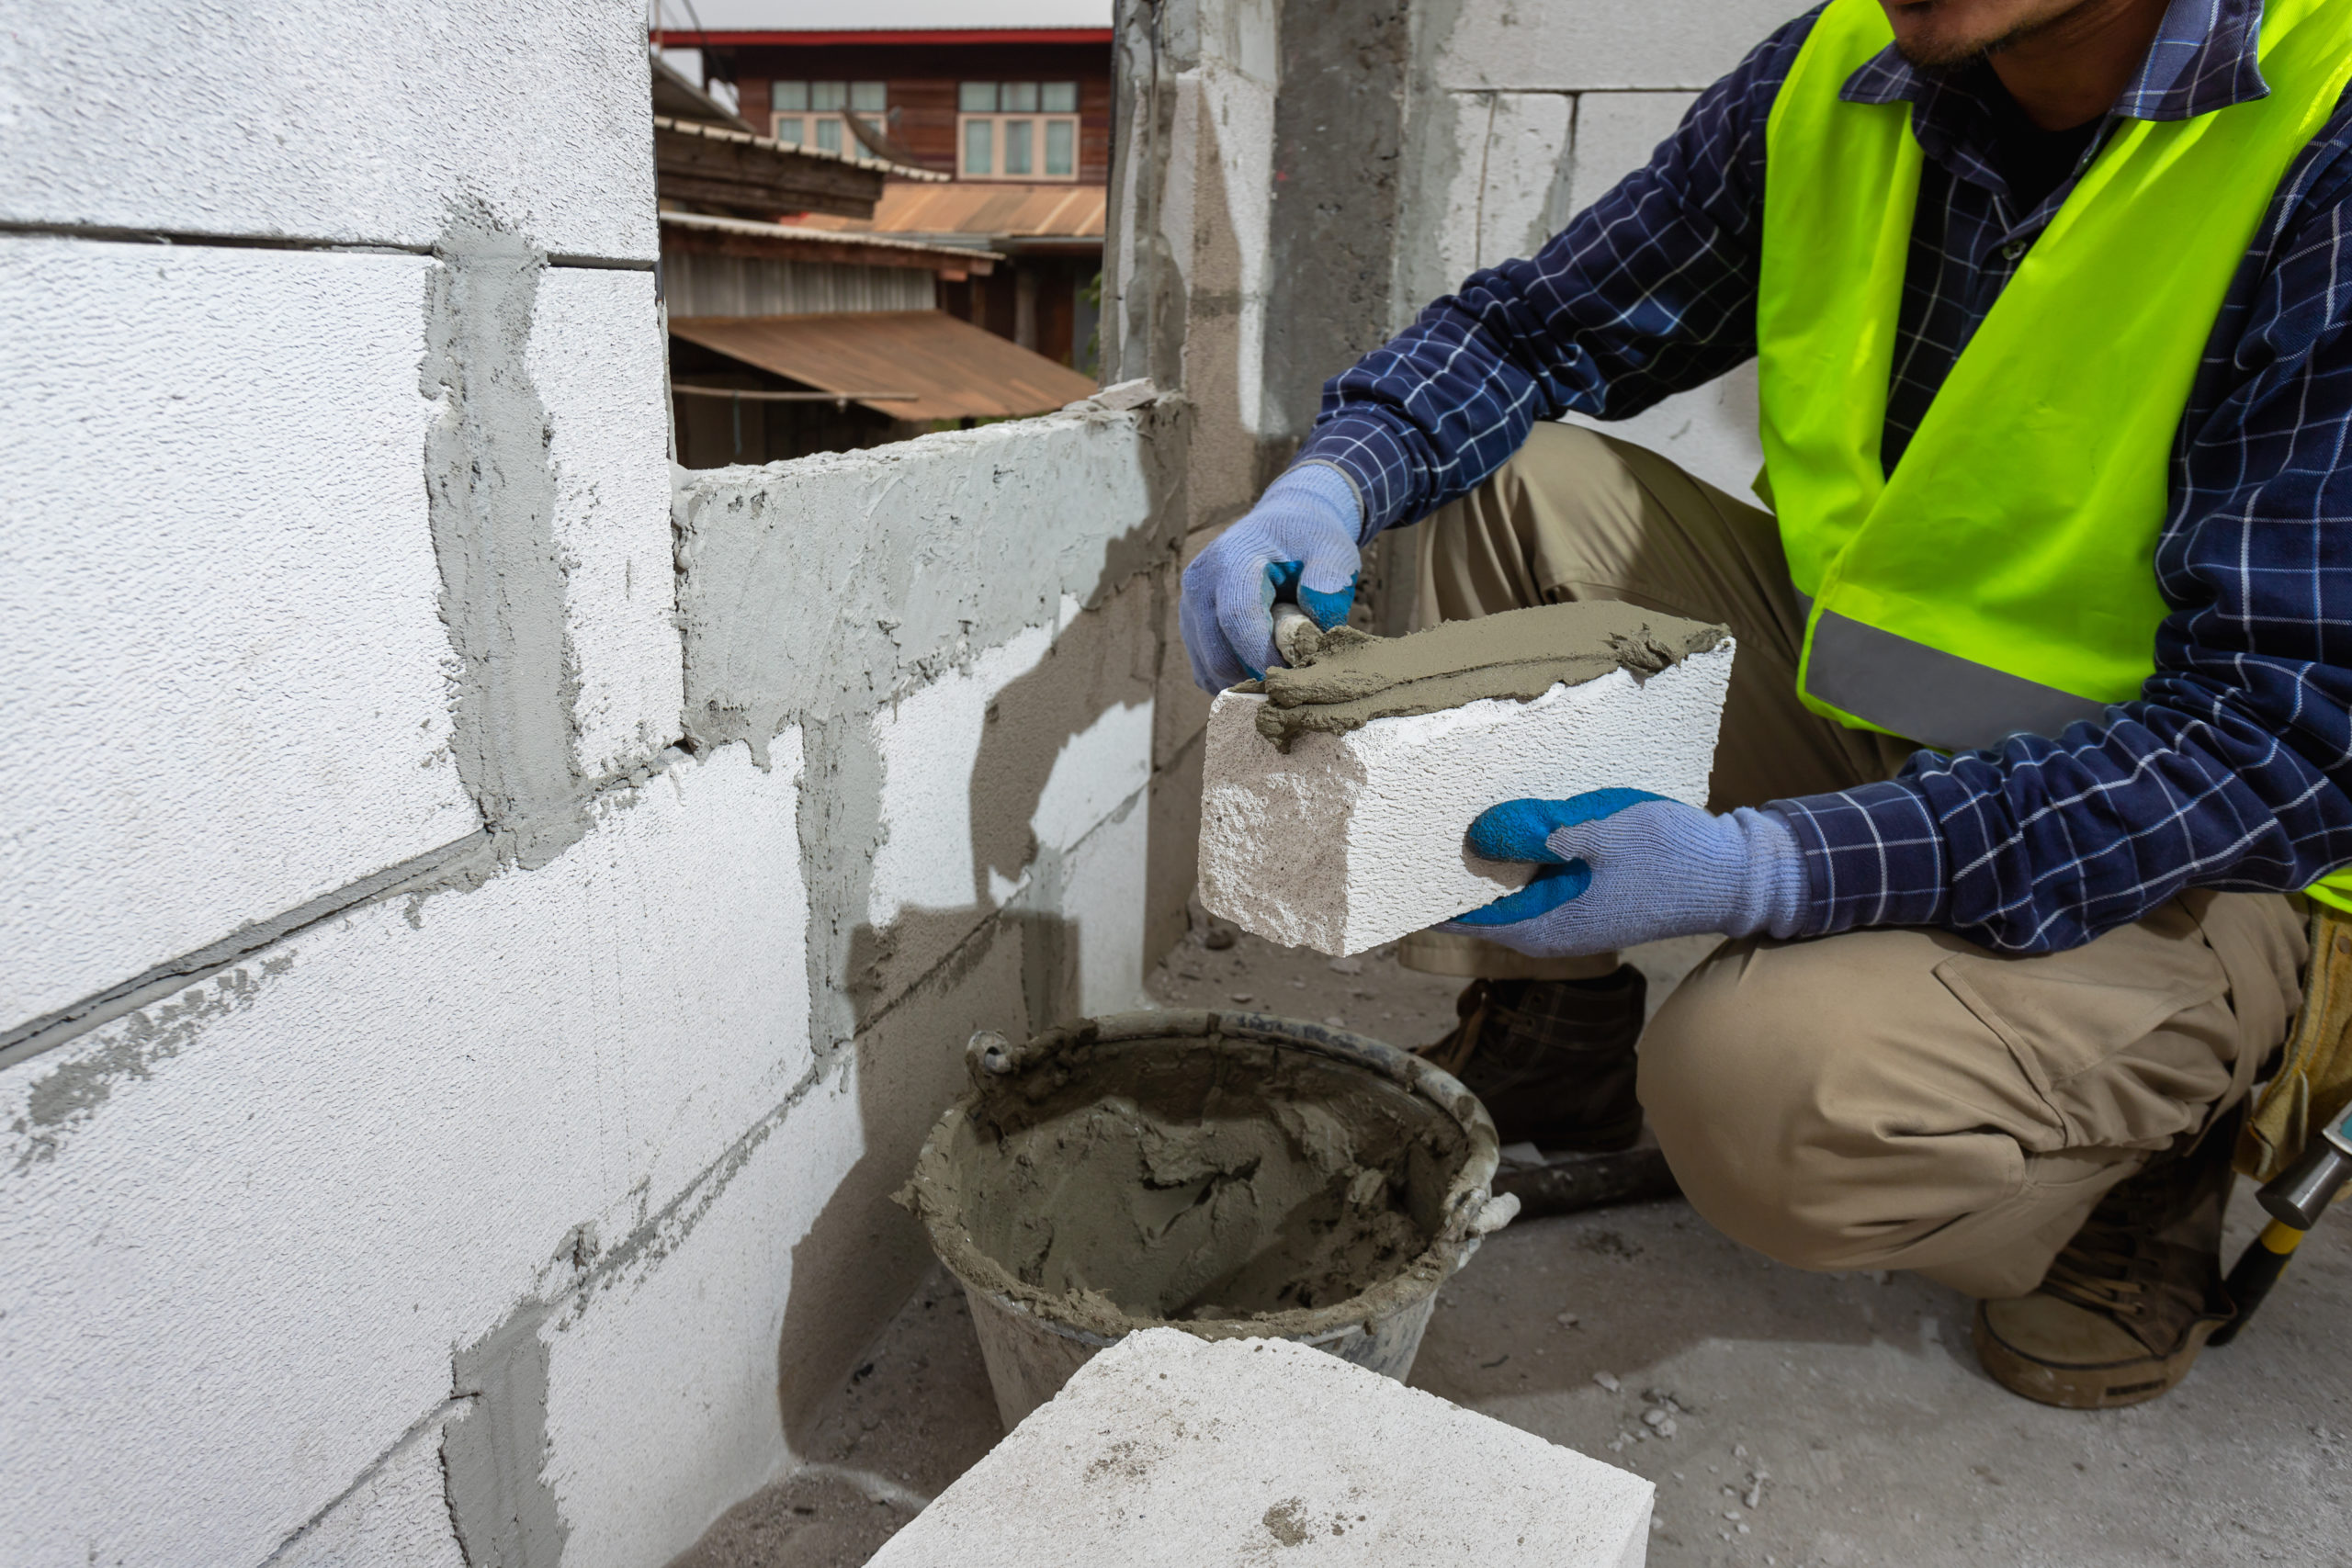 bricklayer builder working with autoclaved aerated concrete blocks. Walling, installing bricks on construction site, Engineering and constructions concepts.